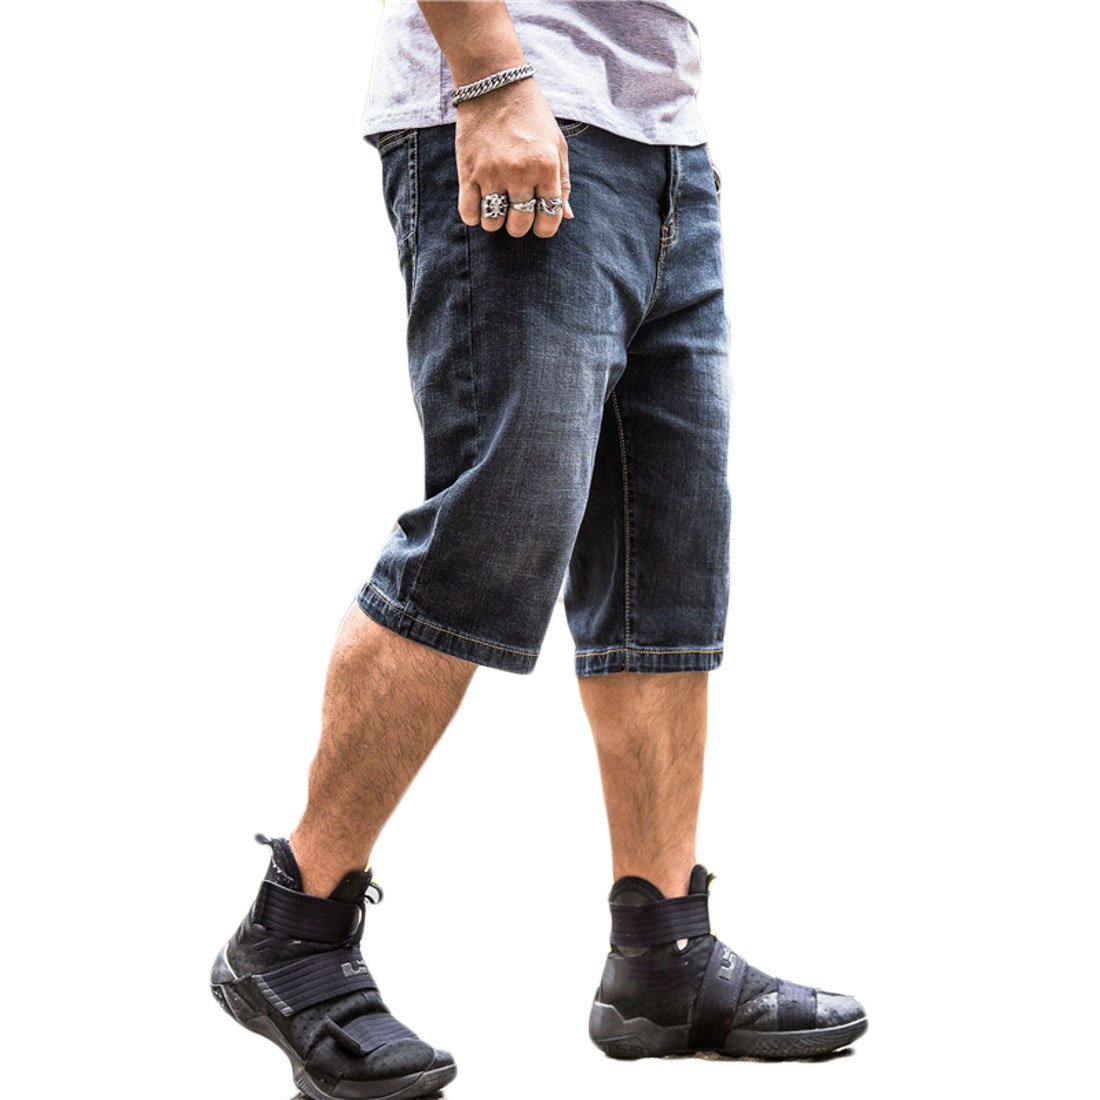 Jotebriyo Men Loose Stretchy Cropped Casual Cargo Tall and Big Denim Shorts Jeans